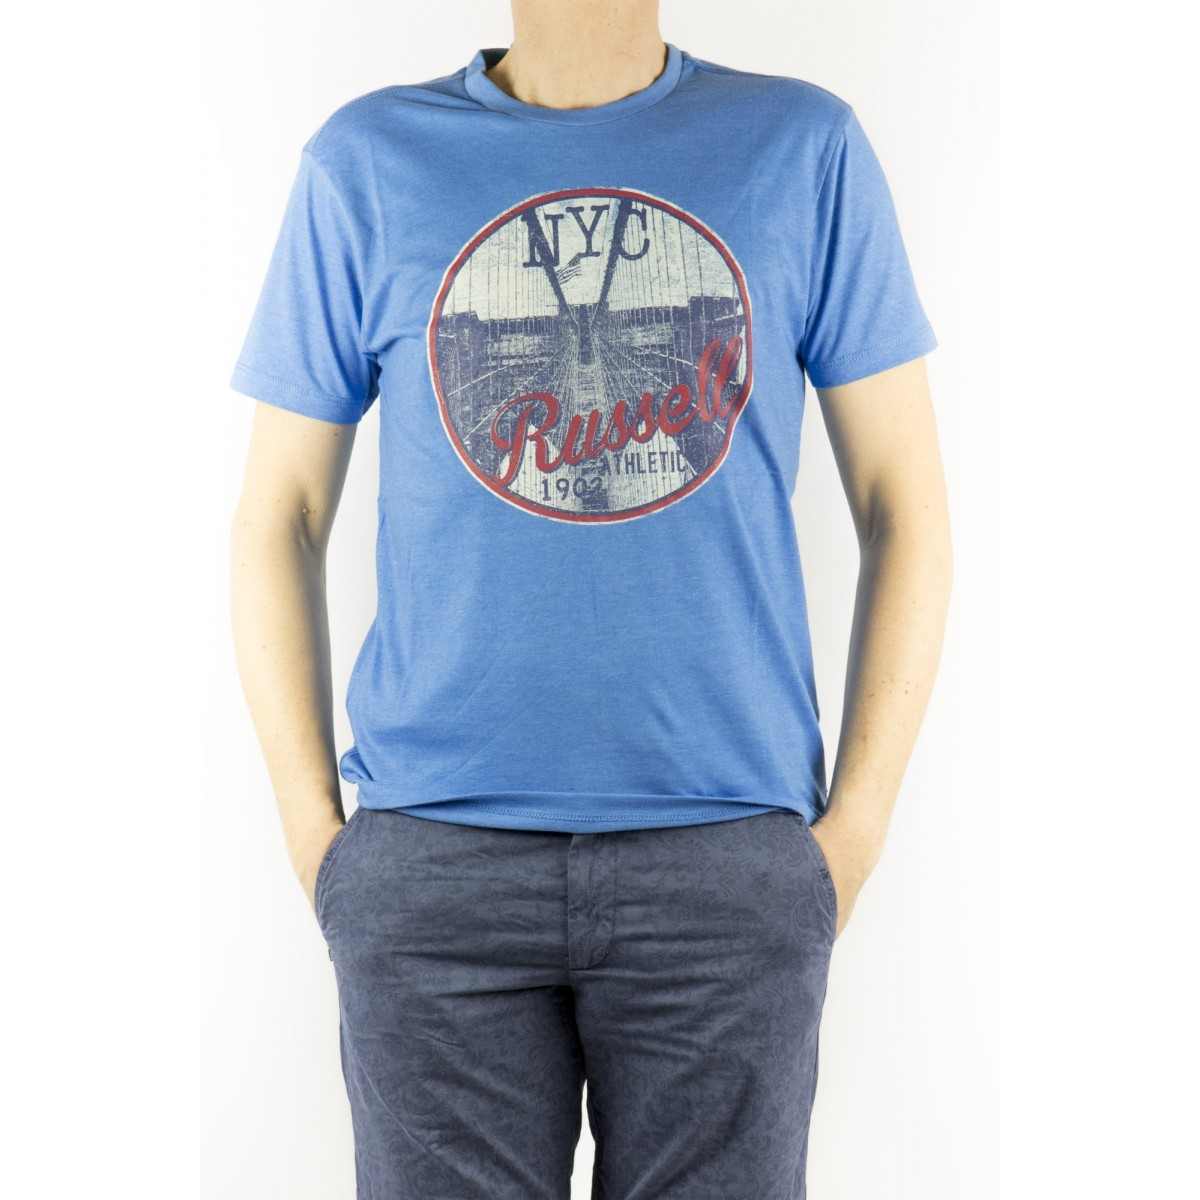 T-Shirt Russell Athletic Vintage - Russell Athletic Vintage A5 612 - 1